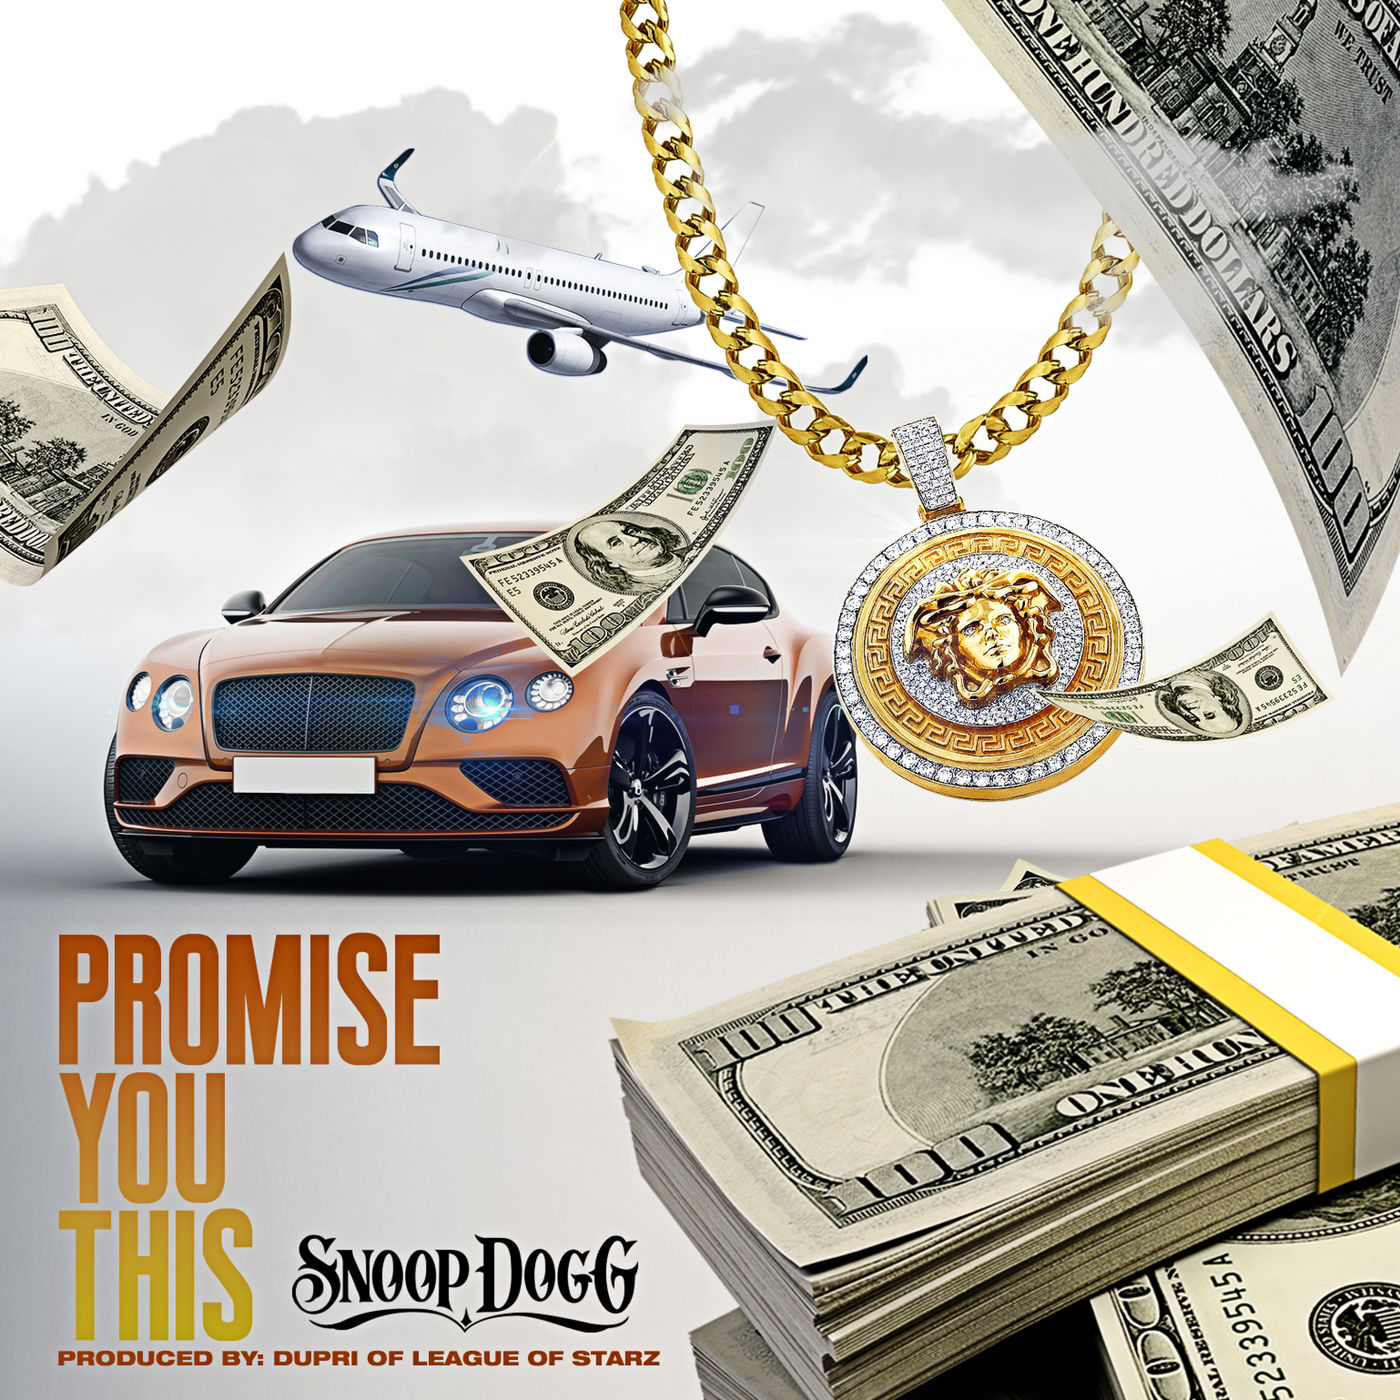 Snoop Dogg - Promise You This - Single Cover